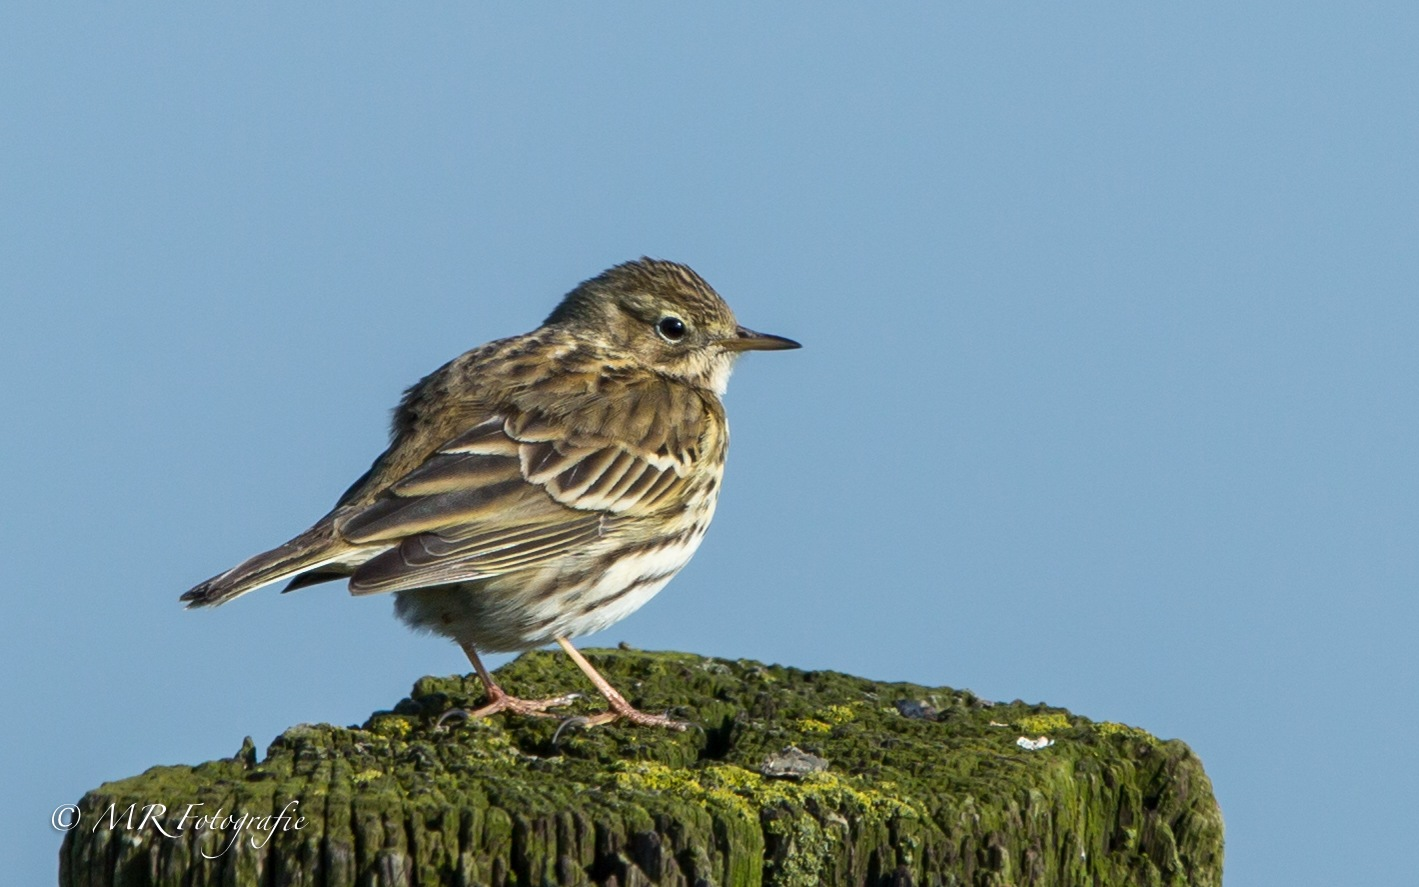 Graspieper - Meadow pipit (Anthus pratensis) by marcrogghe